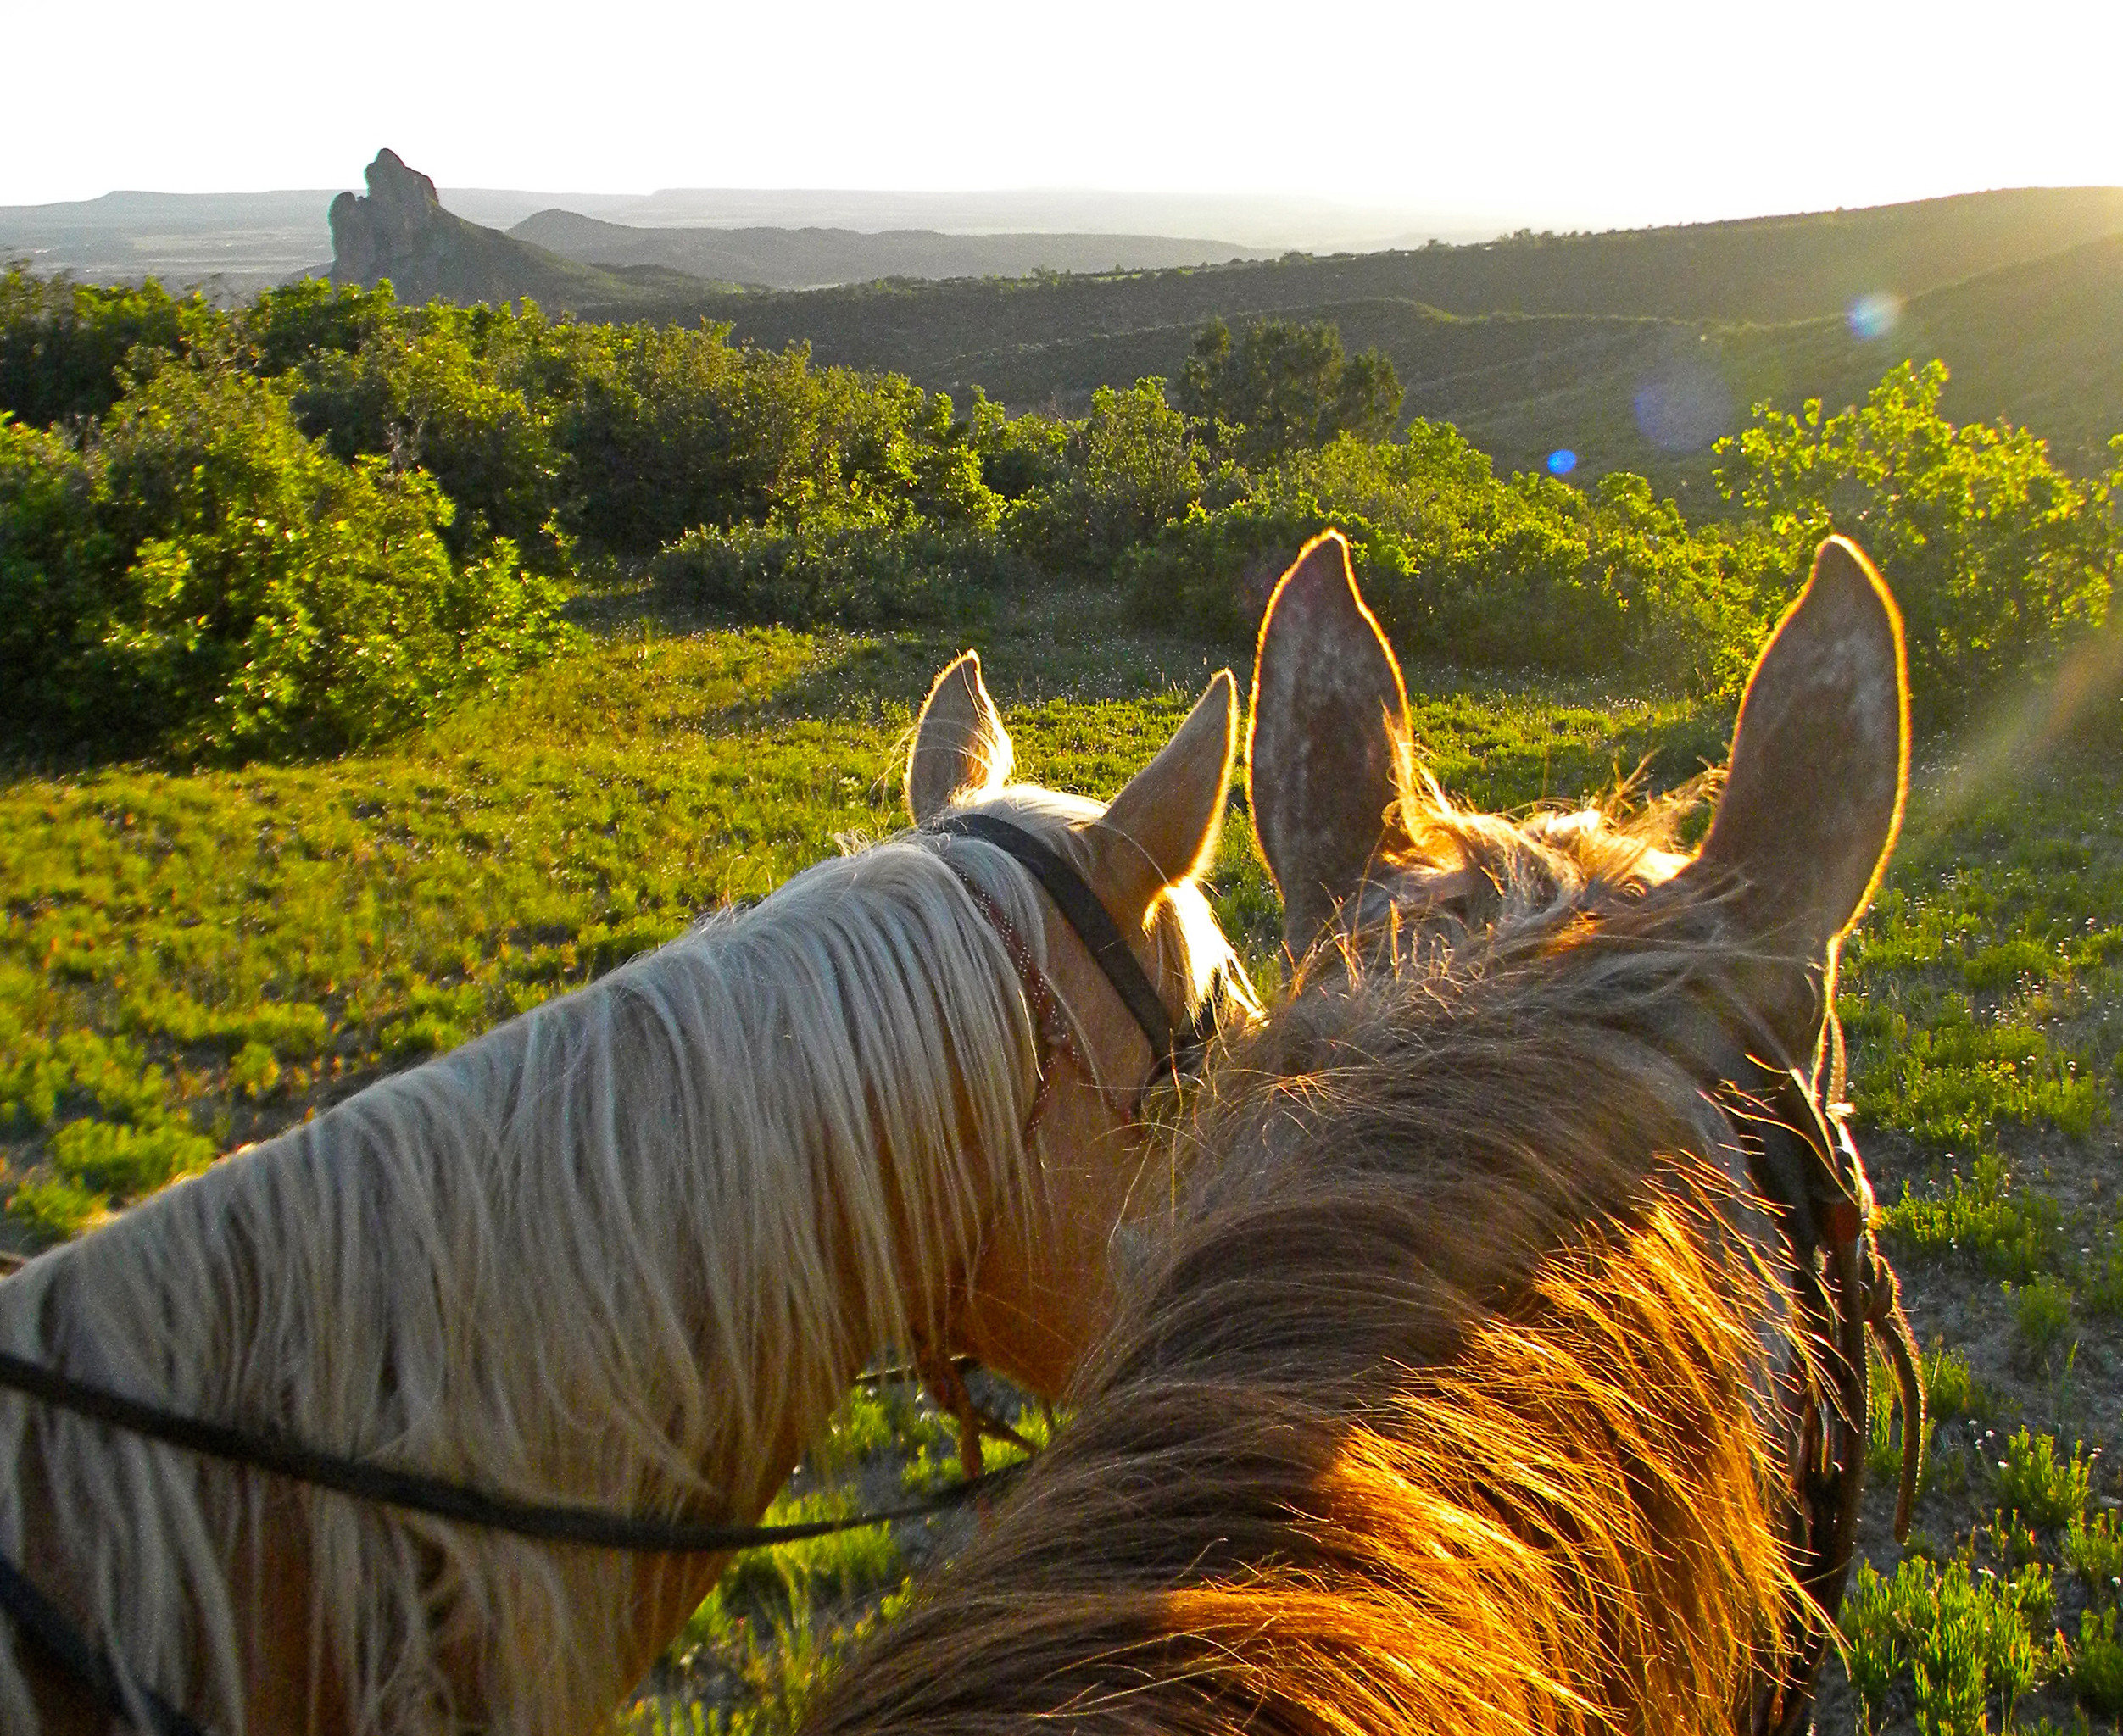 Adventure Mountains Natural wonders Nature Outdoor Activities Outdoors Ranch Scenic views sky grass horse pasture tree field Wildlife horse like mammal flower leaf rural area agriculture colored lush